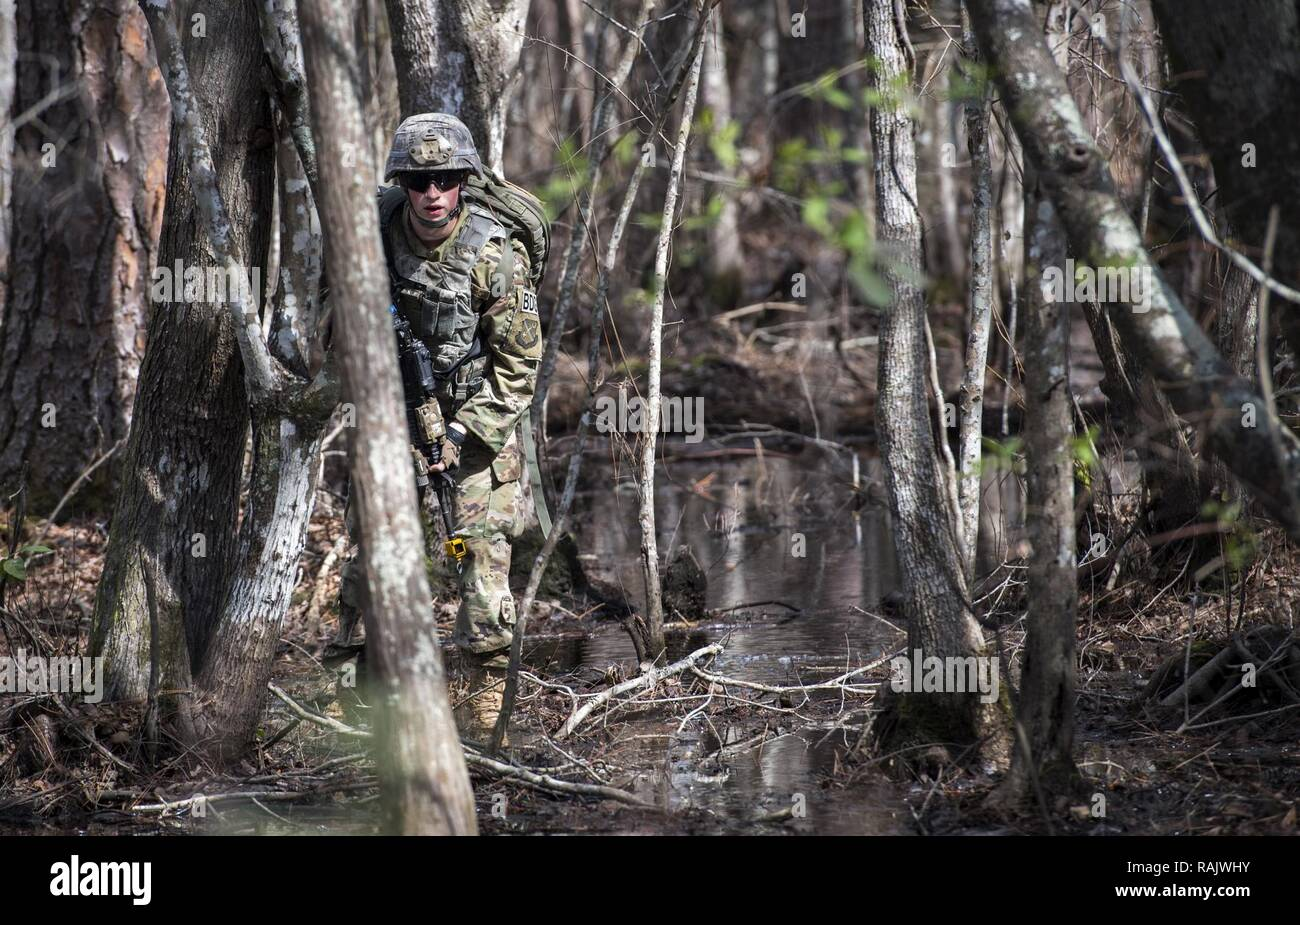 Airman 1st Class Daniel Ross, 822d Base Defense Squadron fireteam member, looks for signs of improvised explosive devices, while simulating patrolling an area outside the wire Feb. 7, 2017, at Moody Air Force Base, Ga. Airmen simulated various missions they would be tasked to complete during a deployment, including being ambushed while out on patrol, gathering intelligence from residents in the local village and raiding buildings. - Stock Image